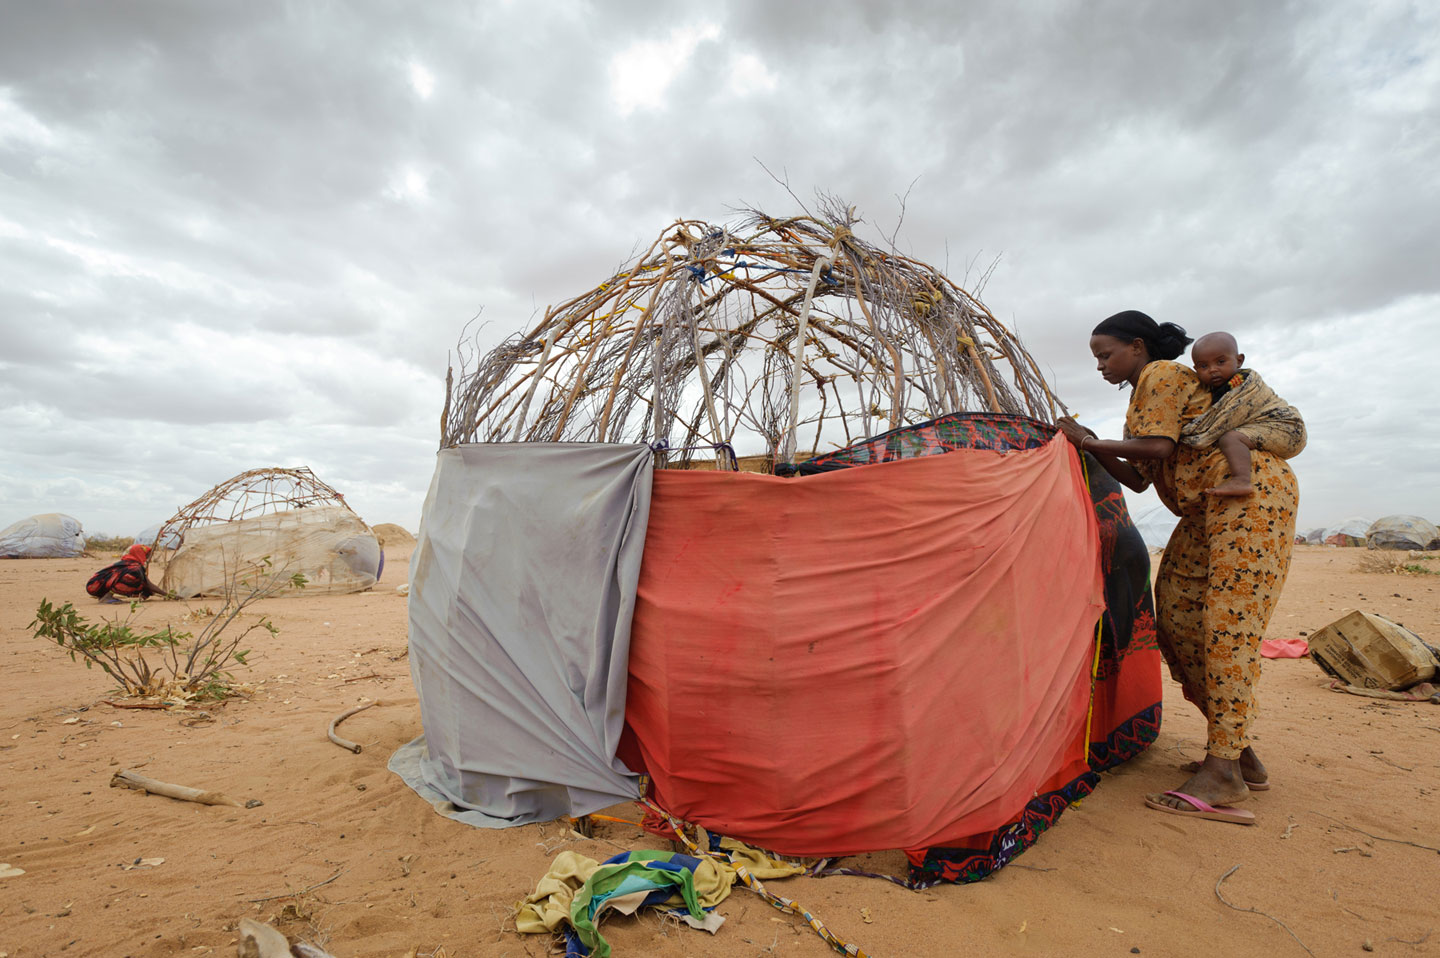 Reaching Dadaab, Isnino was exhausted but had to make her own hut out of sticks, borrowed clothing scraps, and burlap sacks that once contained relief food.